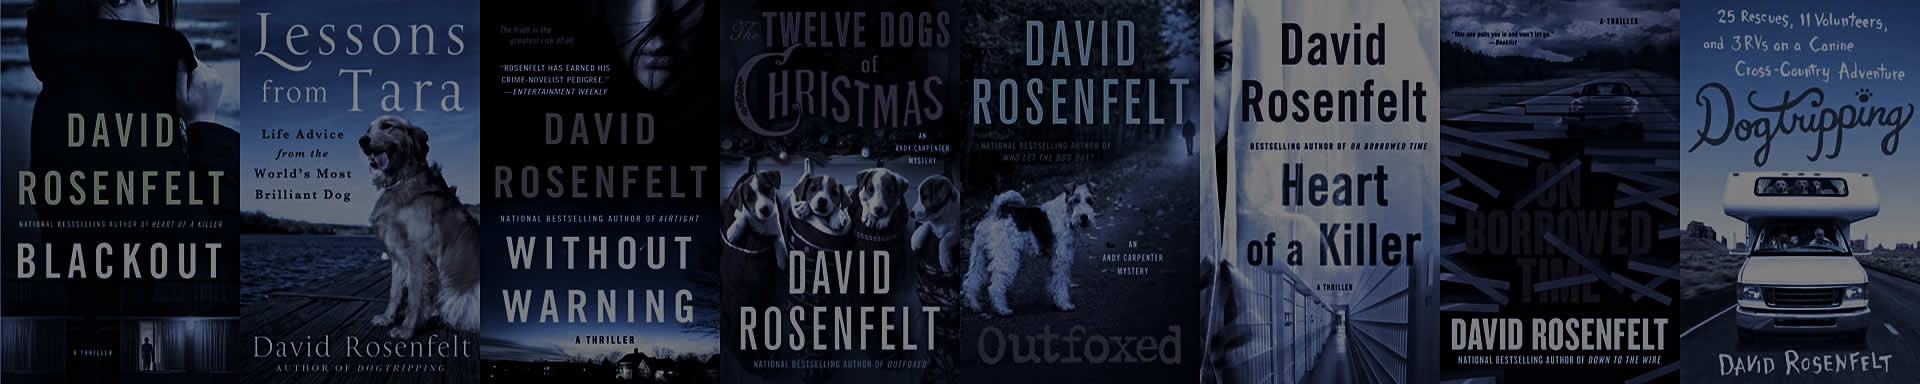 Books by David Rosenfelt